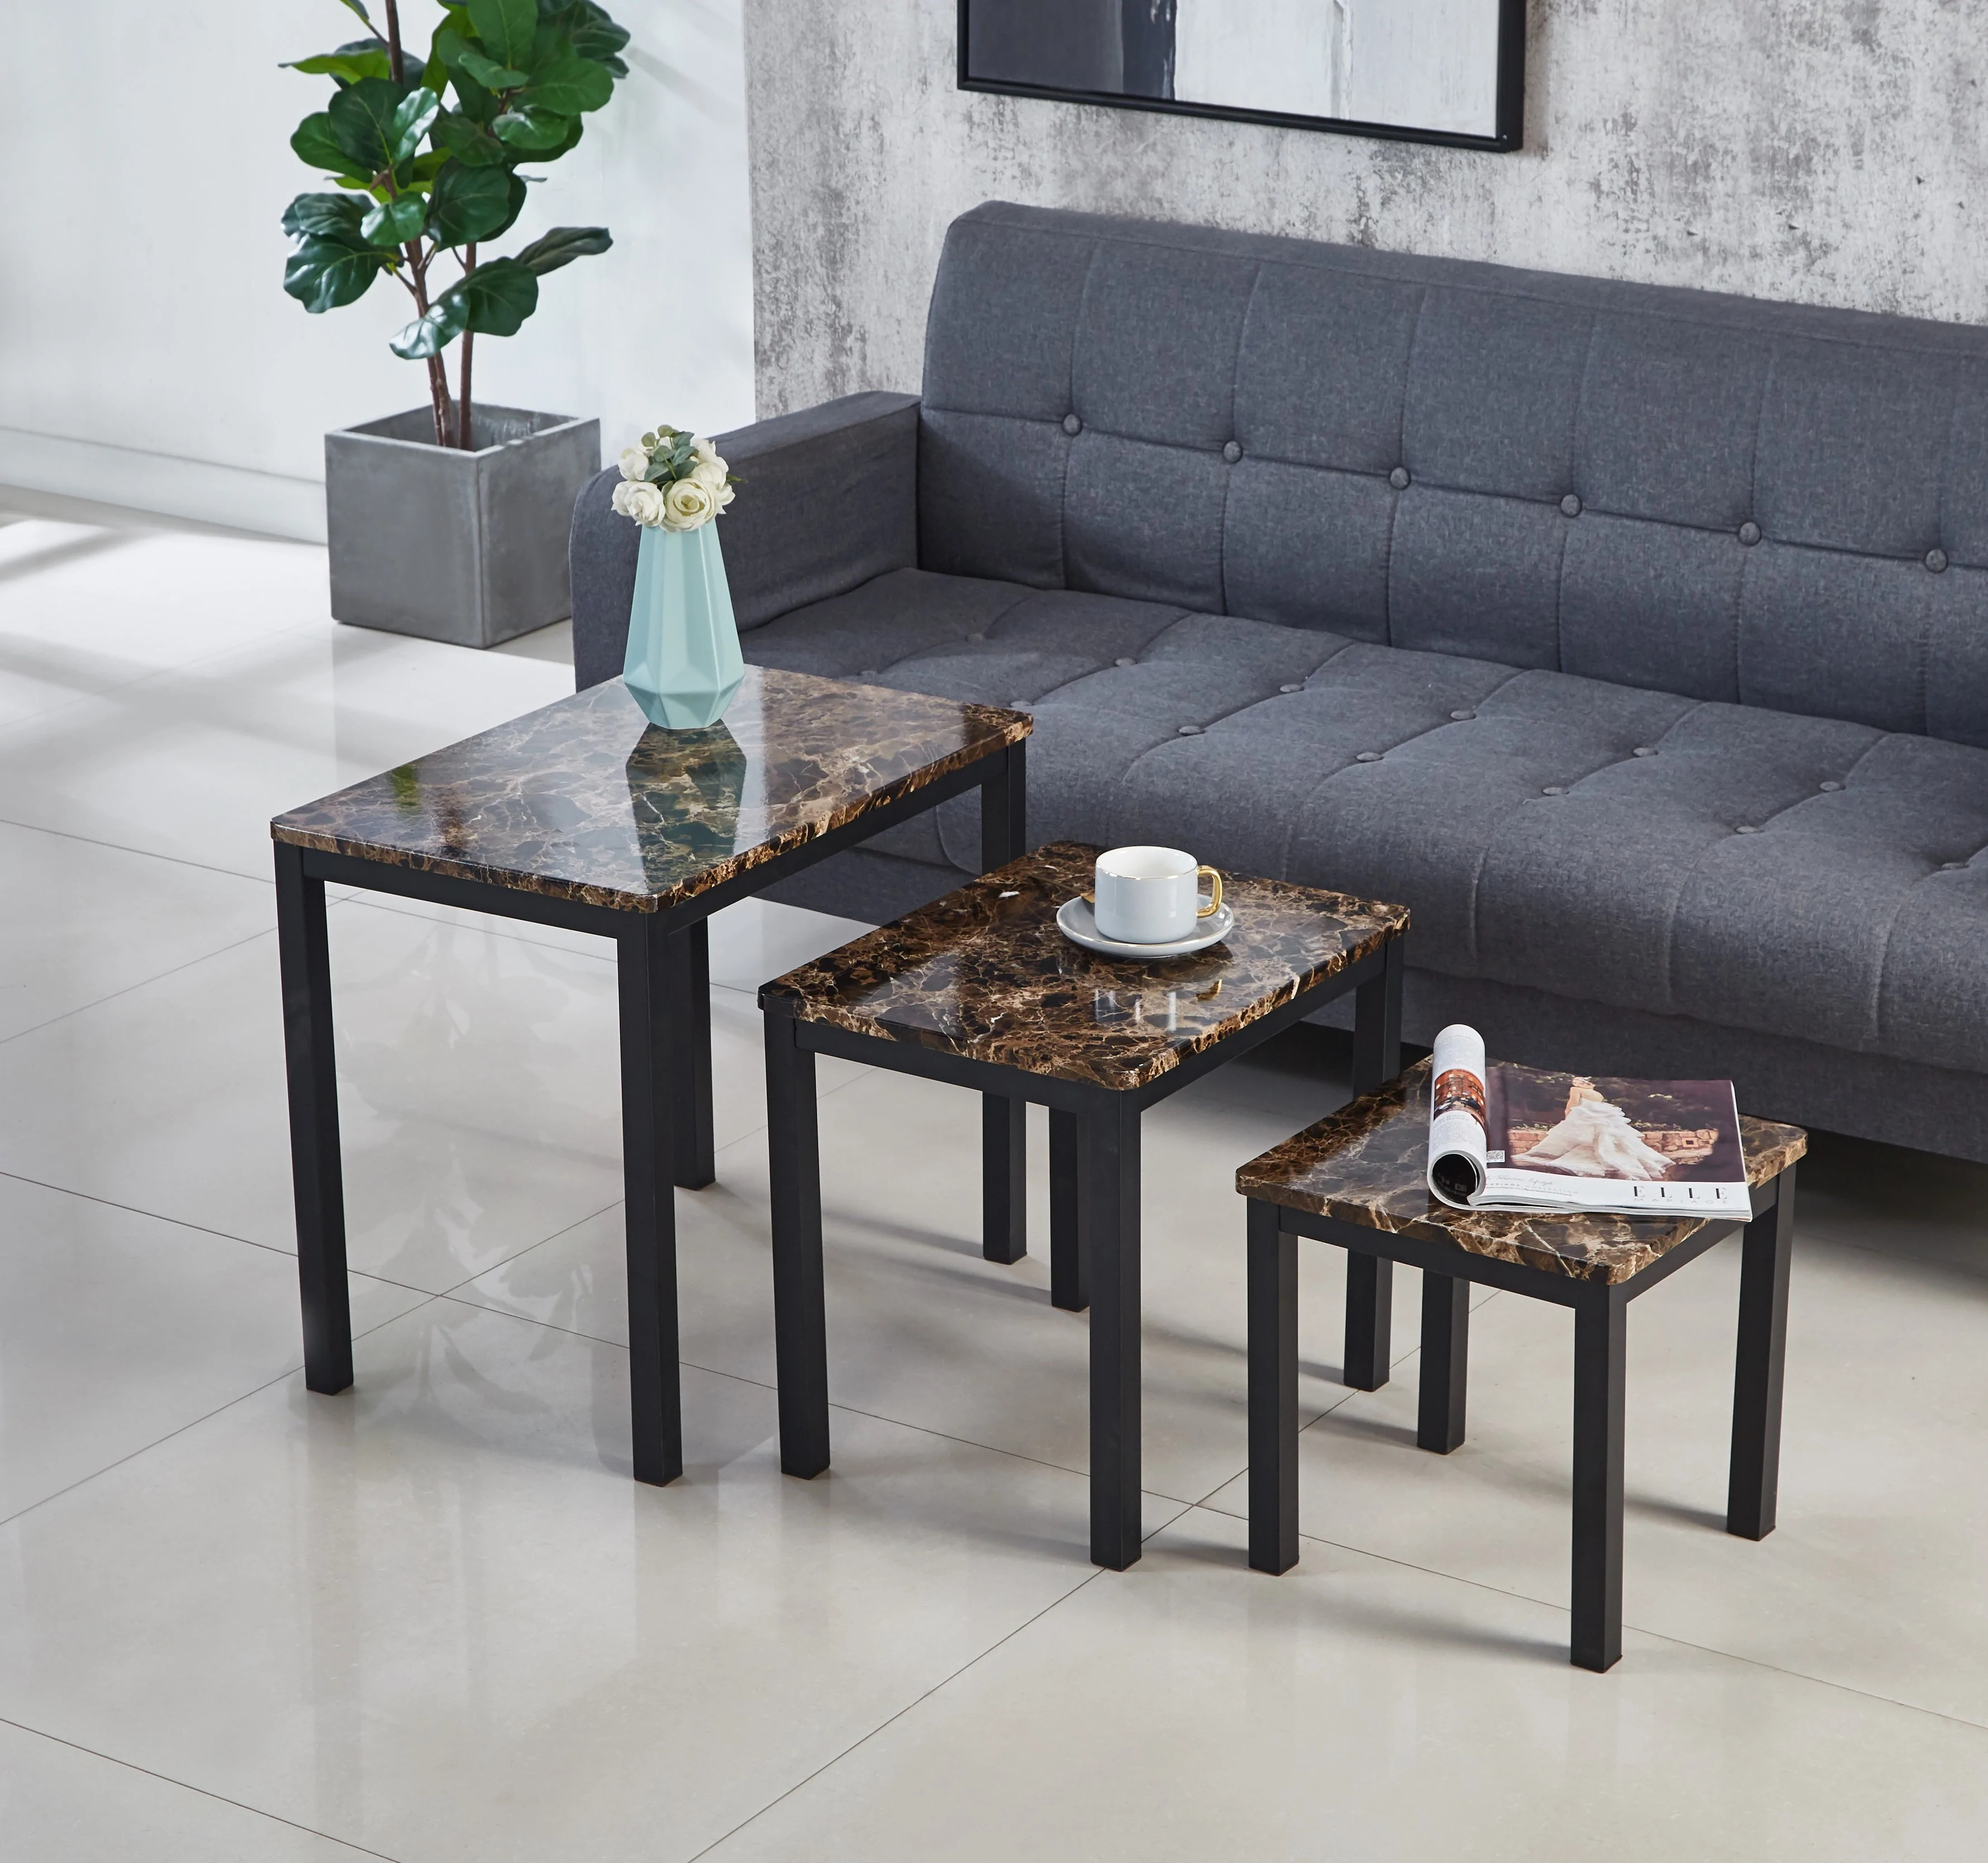 emillia mdf marble effect coffee table coffee table with 2 side tables nest of 3 tables set available in black brown grey black metal frame